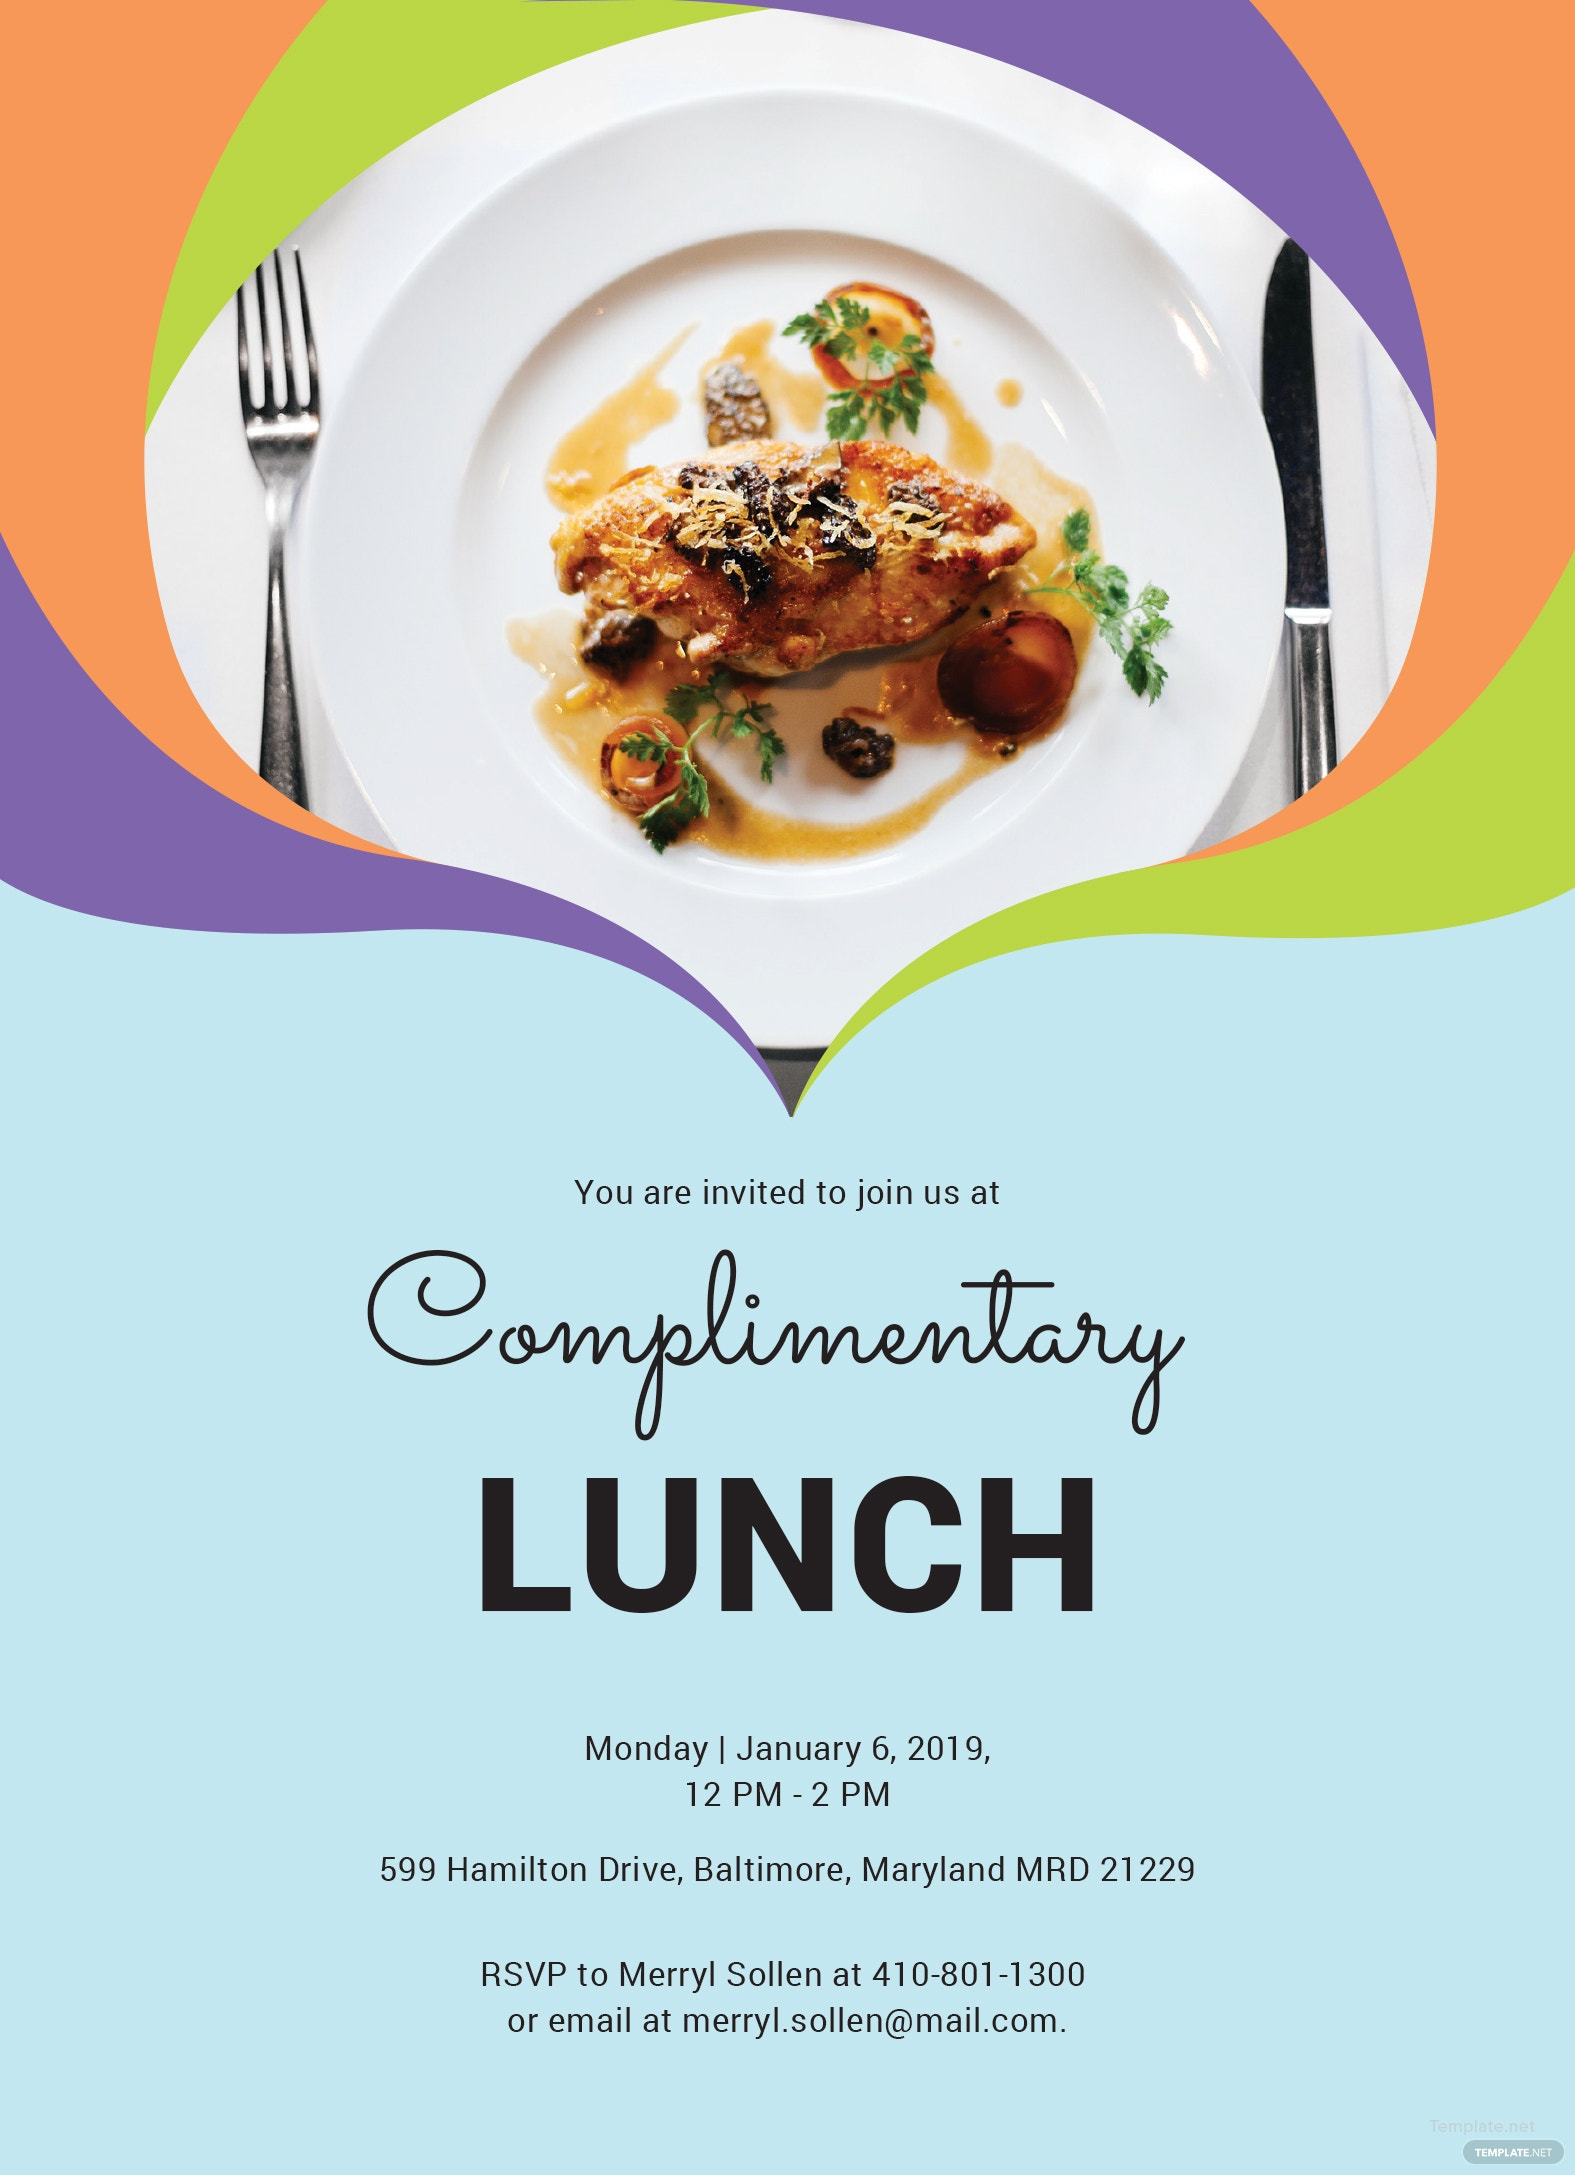 Free Complimentary Lunch Invitation Template in MS Word Publisher